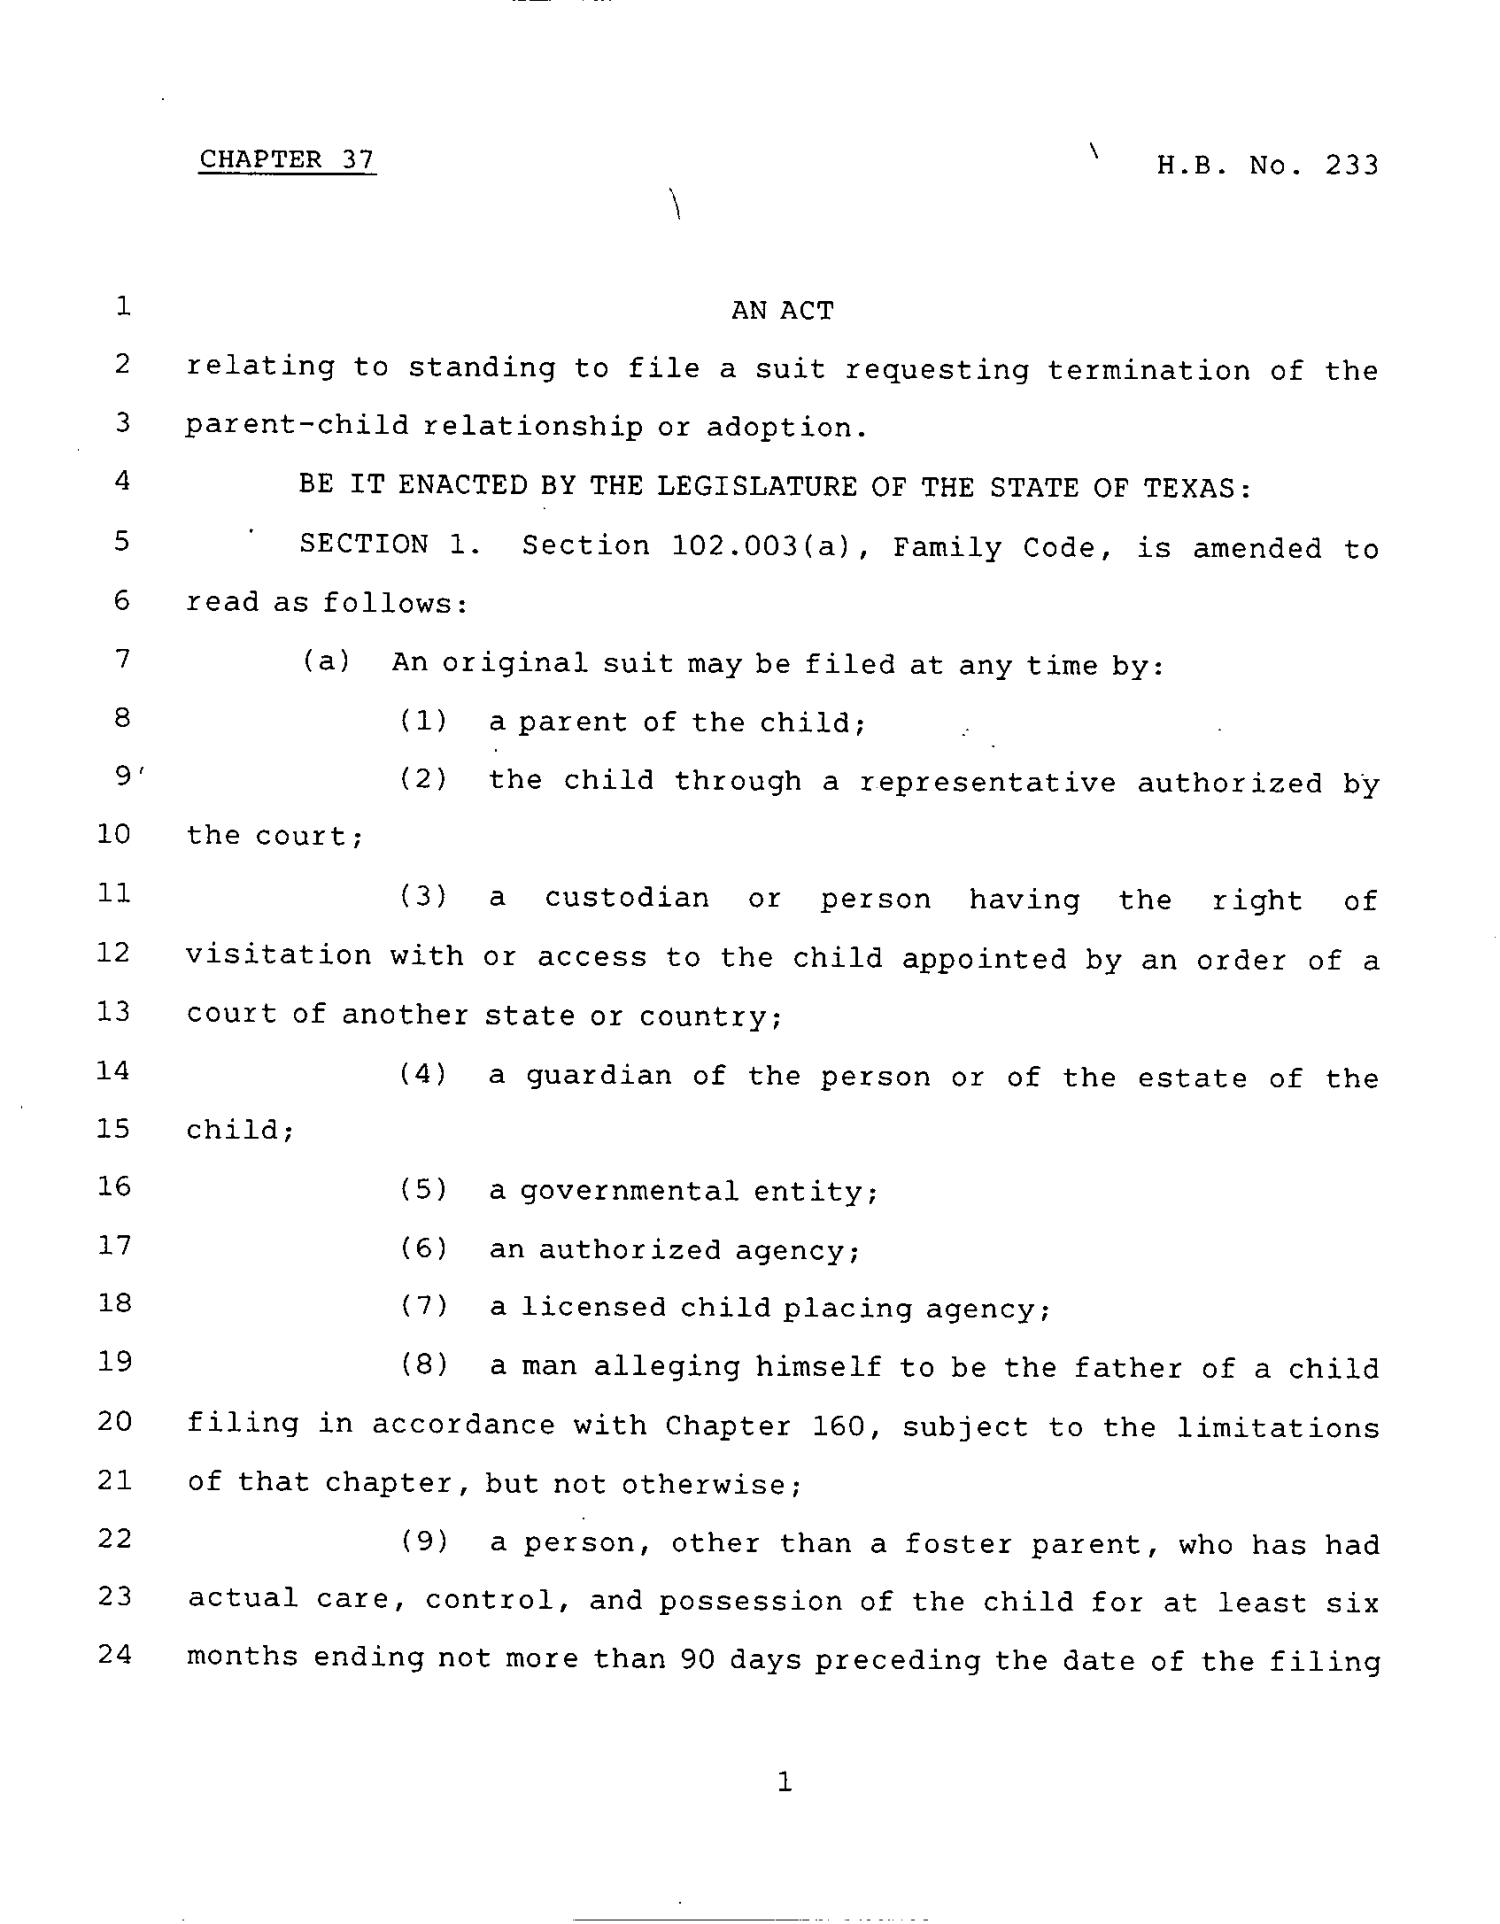 78th Texas Legislature, Regular Session, House Bill 233, Chapter 37                                                                                                      [Sequence #]: 1 of 5